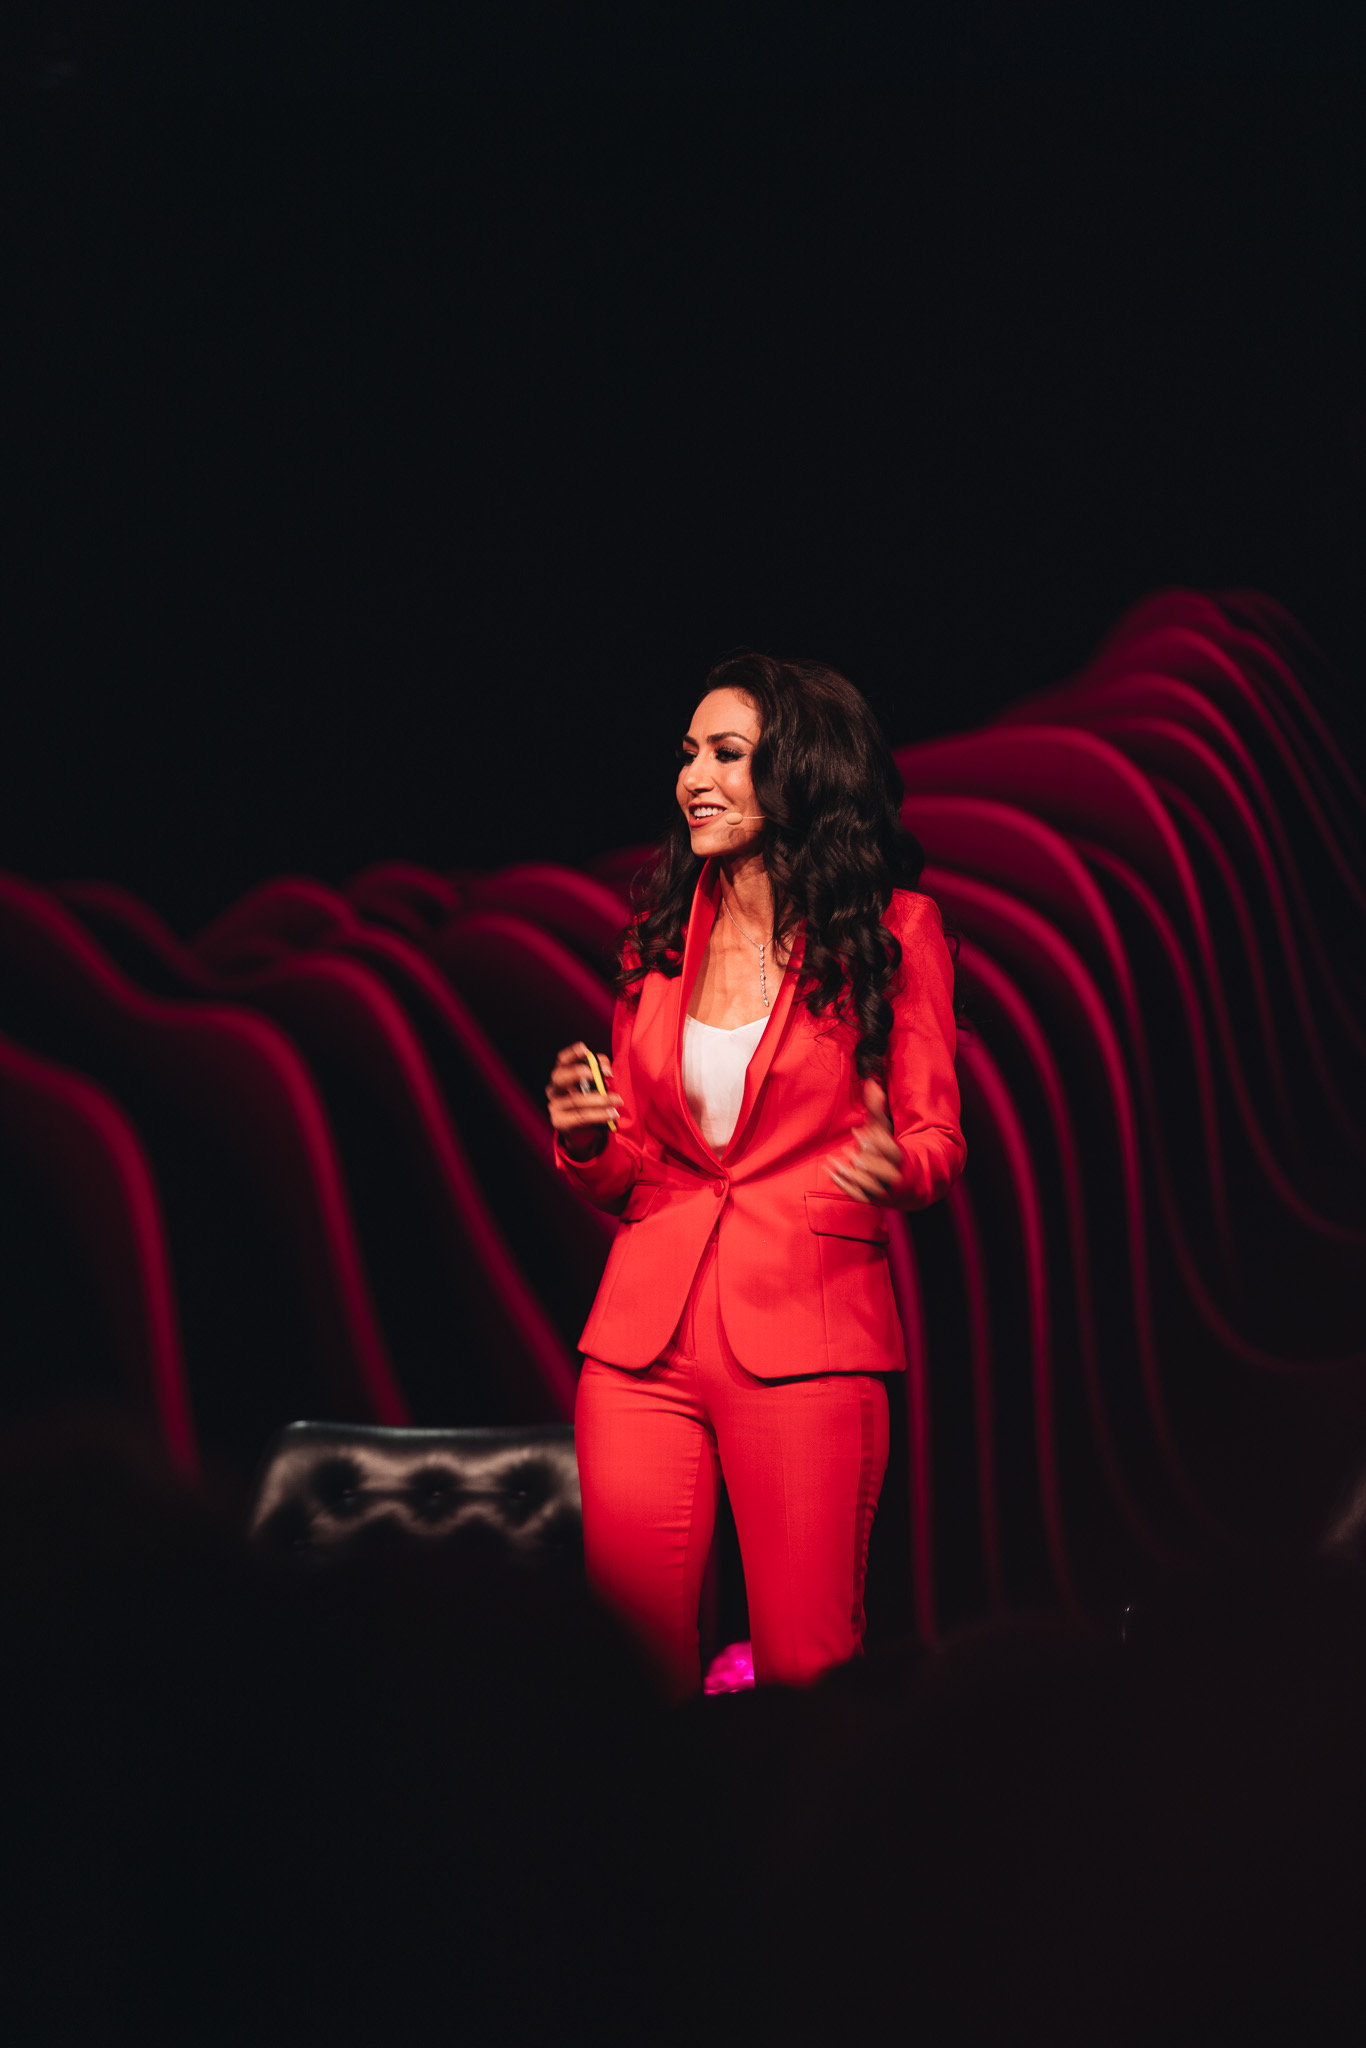 Dr.Mouna - Dr. Mouna one of the speakers and moderators at Brilliant Minds 2019